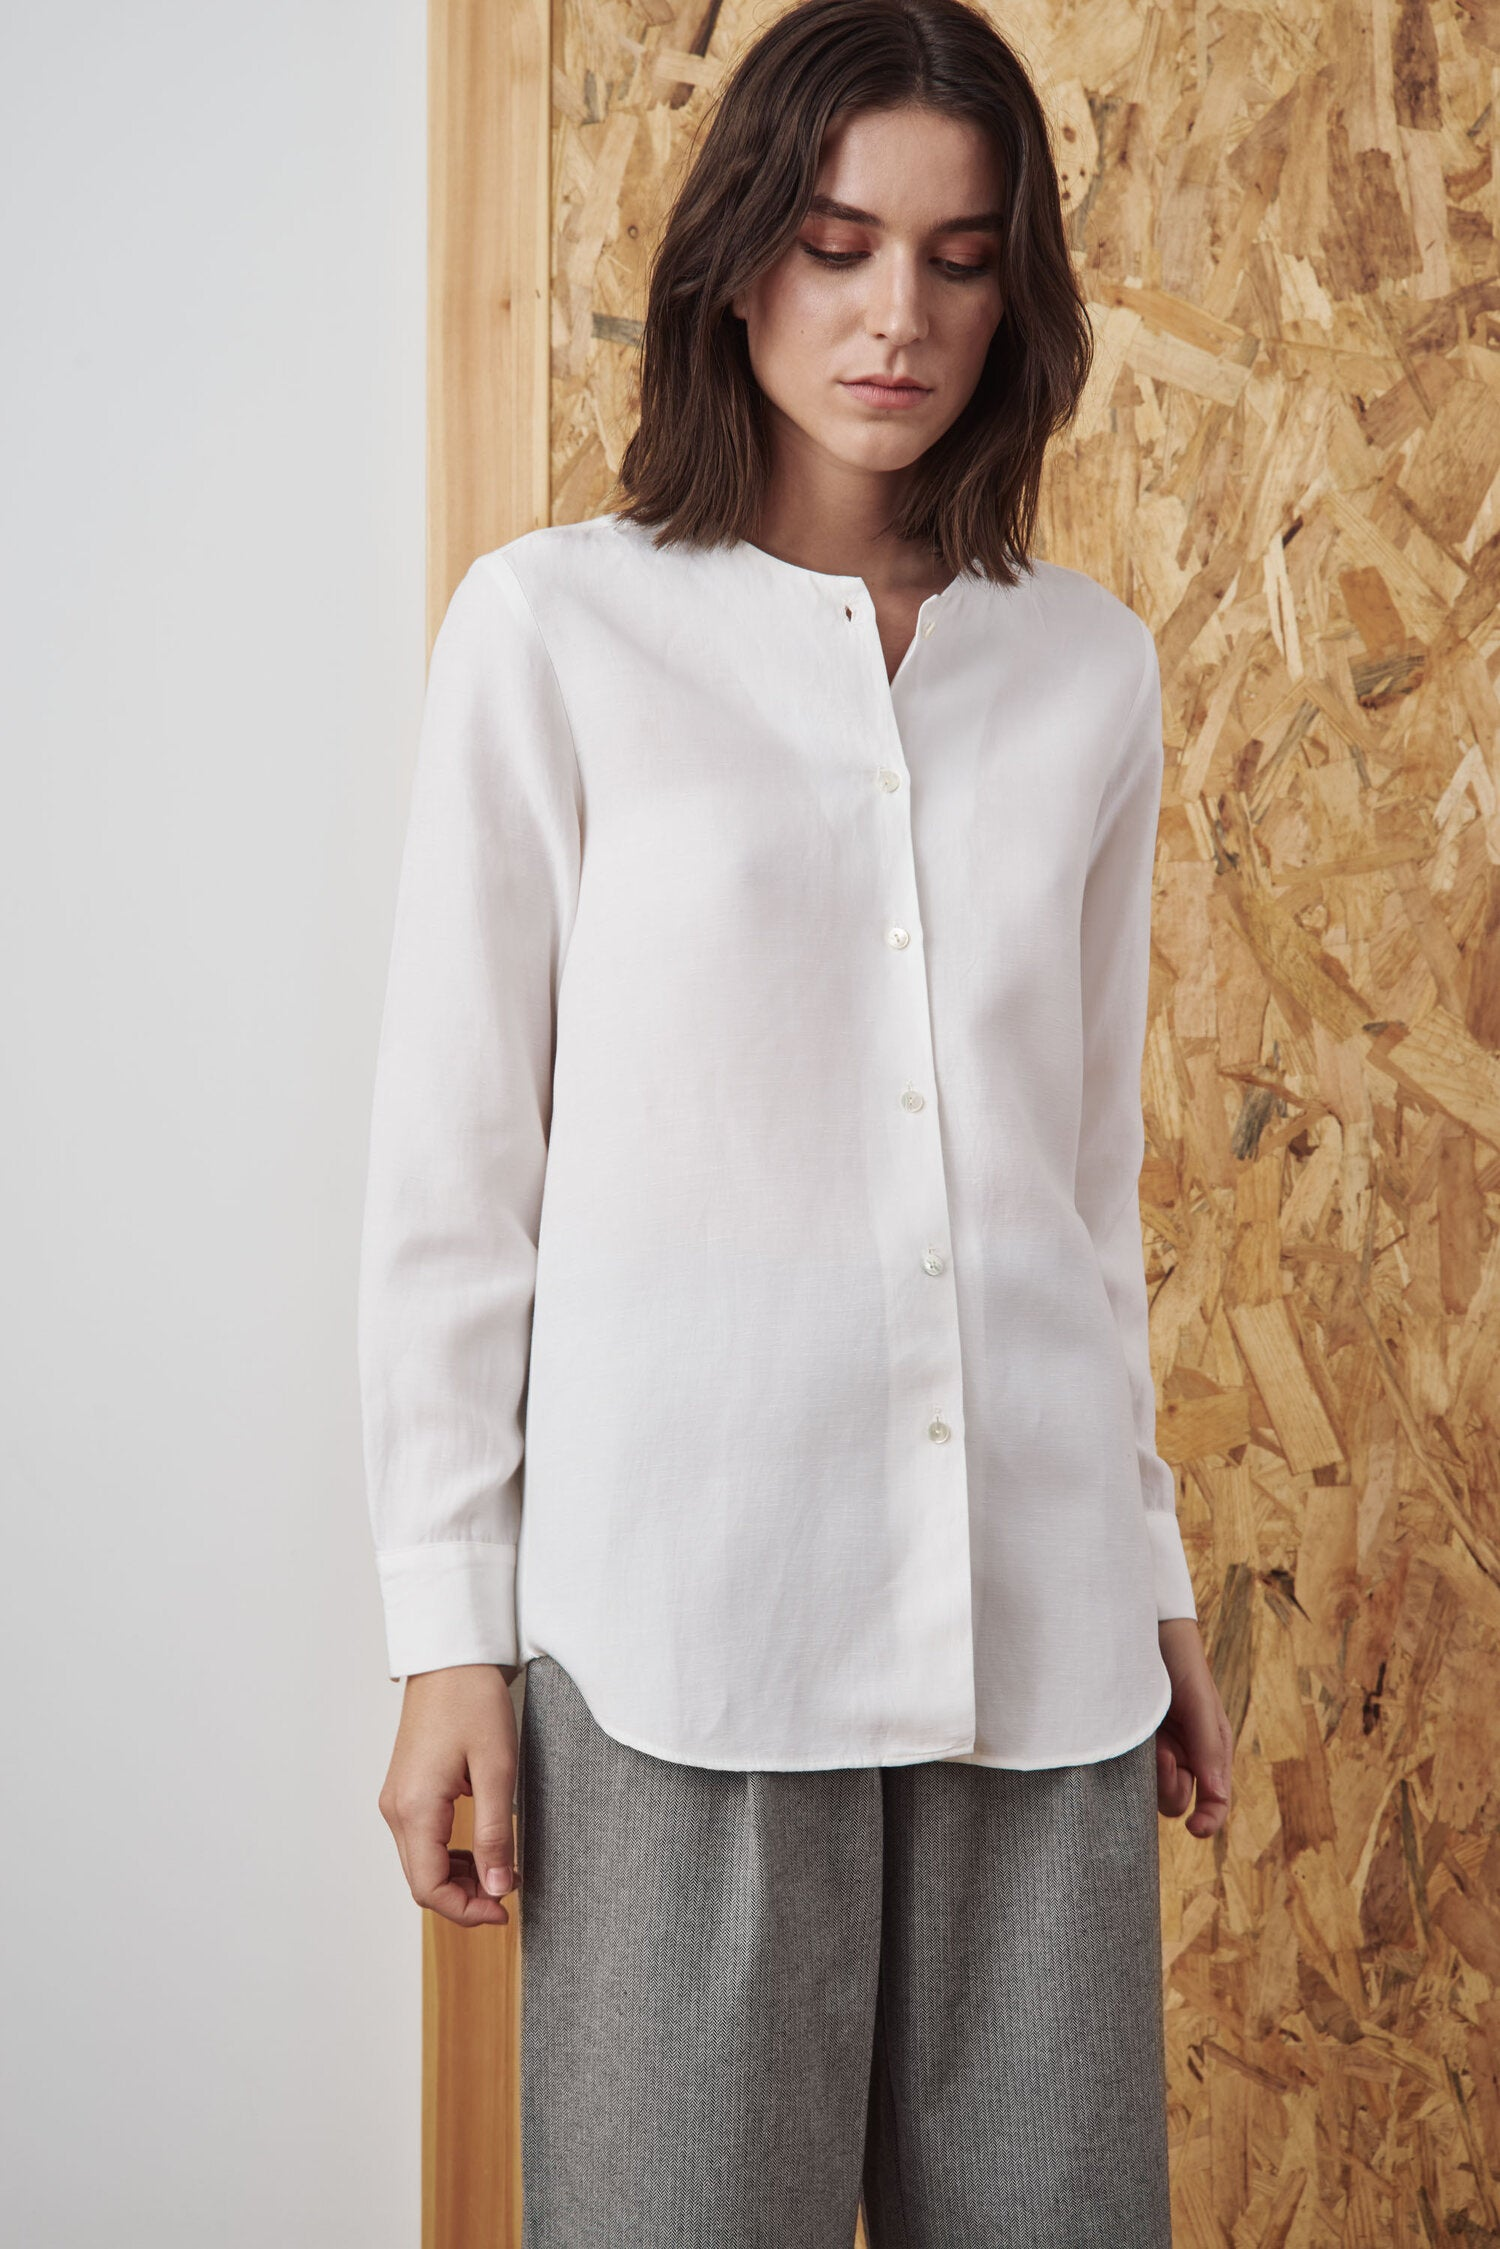 Sunad Corrubedo Blanco Blouse features a classic button-up silhouette crafted of linen-blend